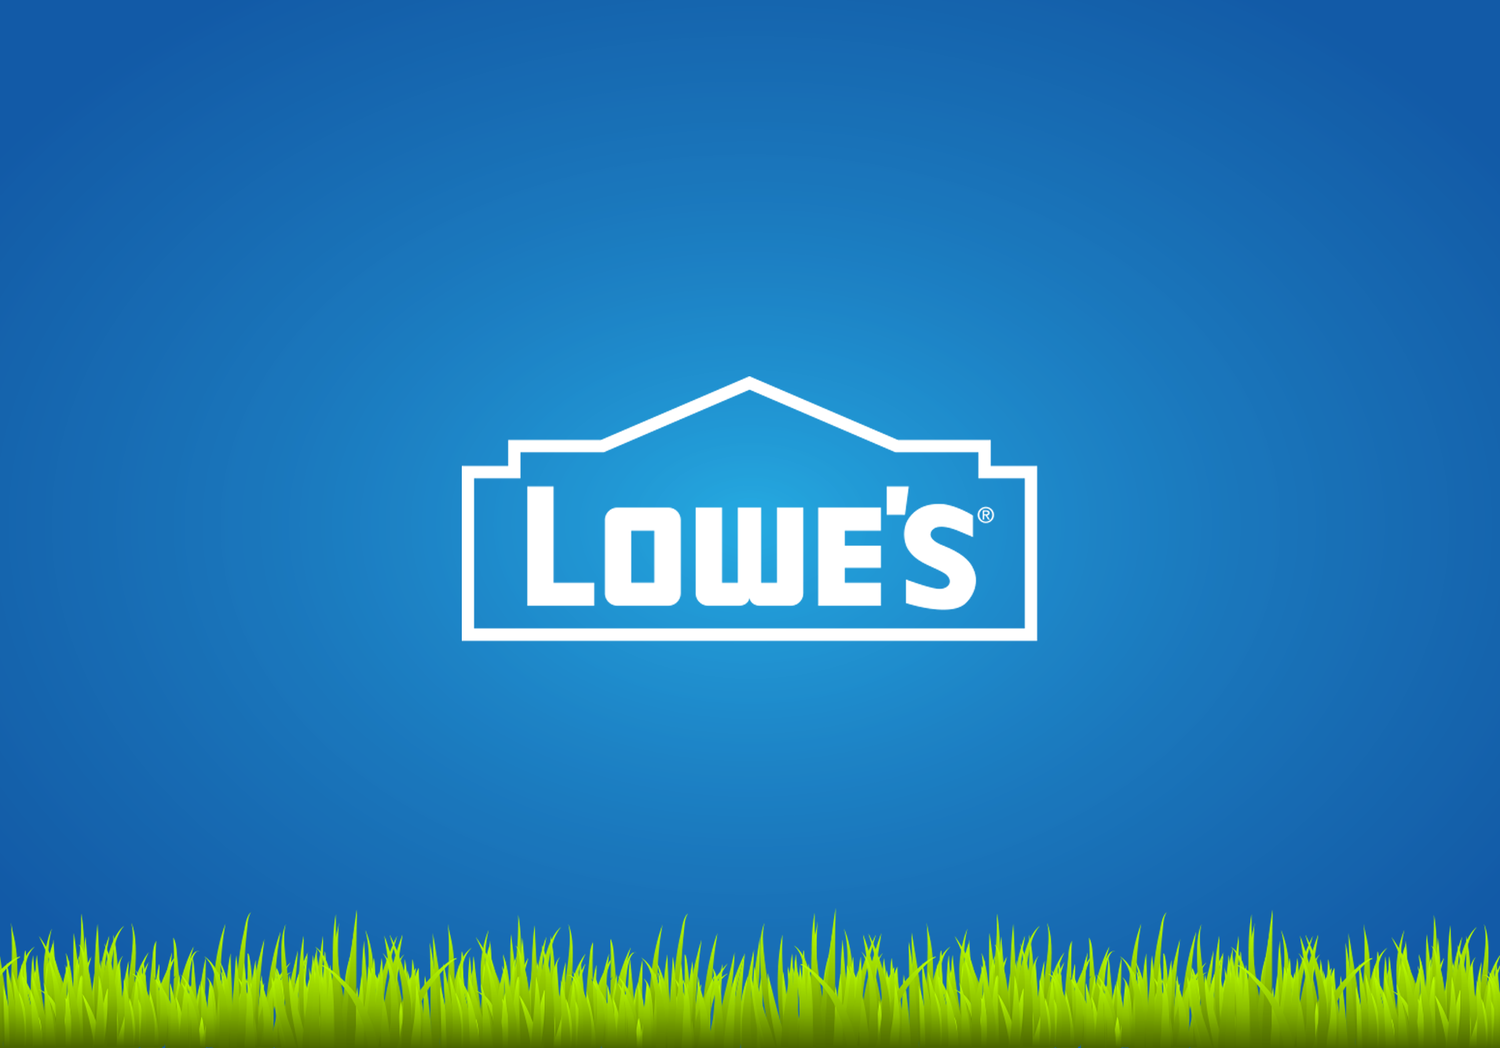 Lowes Buys Rona